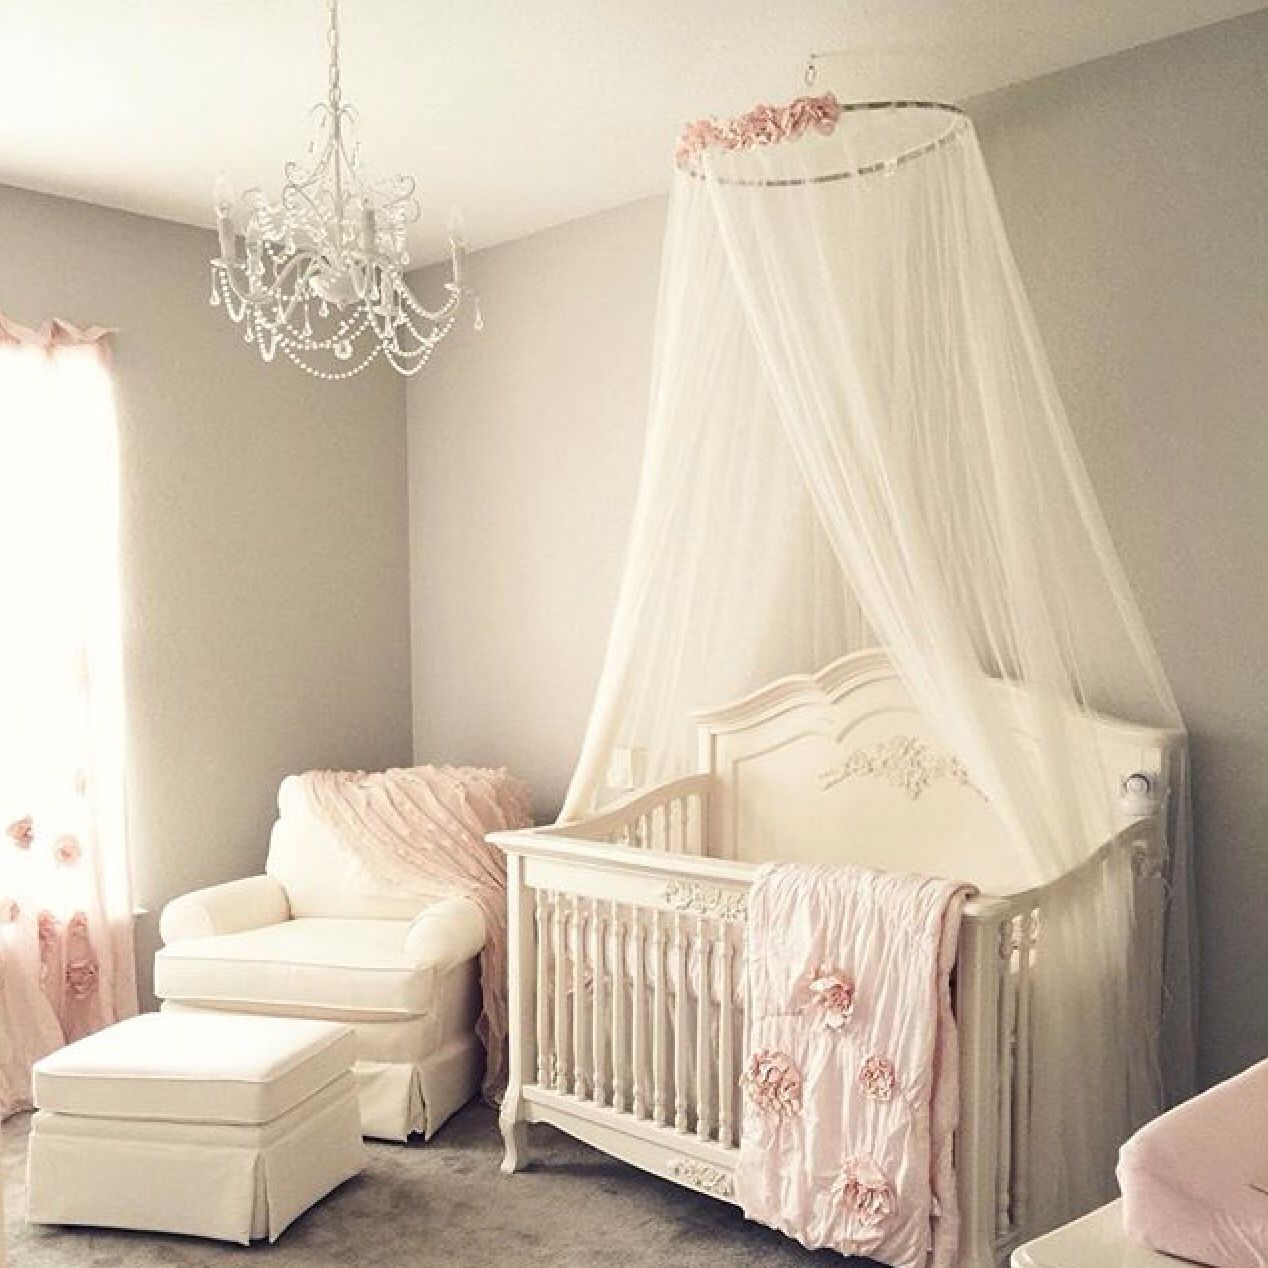 Simple Decorating Girl Nursery Design: Girl Nursery, Baby Room